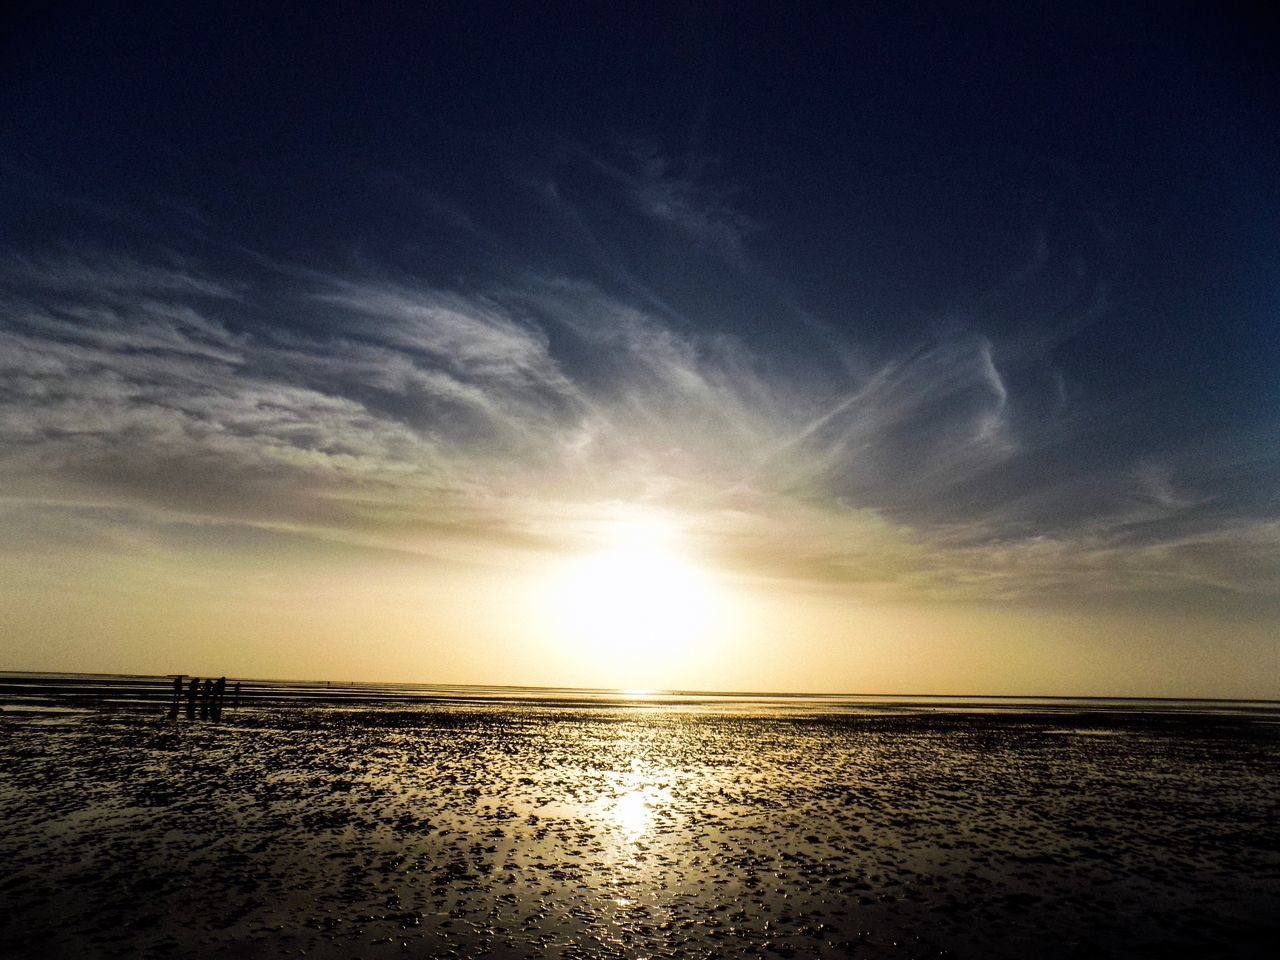 sunset, scenics, sea, sky, beauty in nature, sun, tranquility, tranquil scene, nature, horizon over water, water, cloud - sky, outdoors, beach, silhouette, sunlight, reflection, no people, sand, day